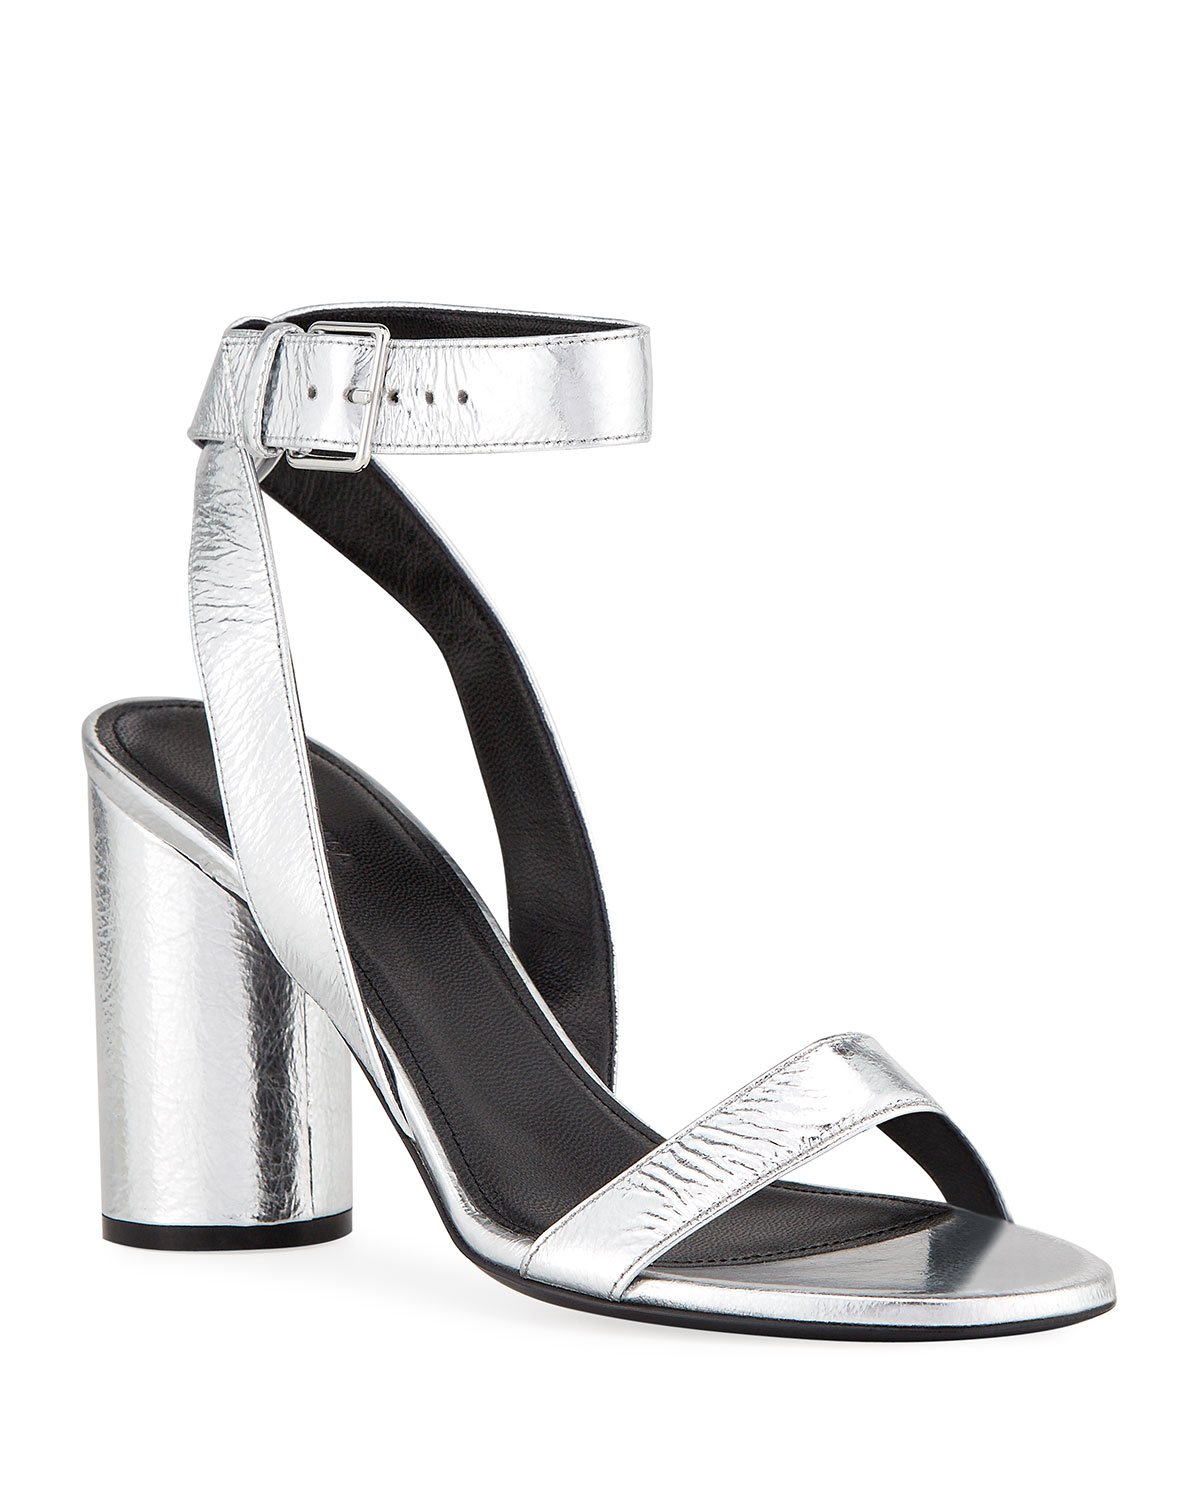 Balenciaga Oval Metallic Leather Ankle Sandals